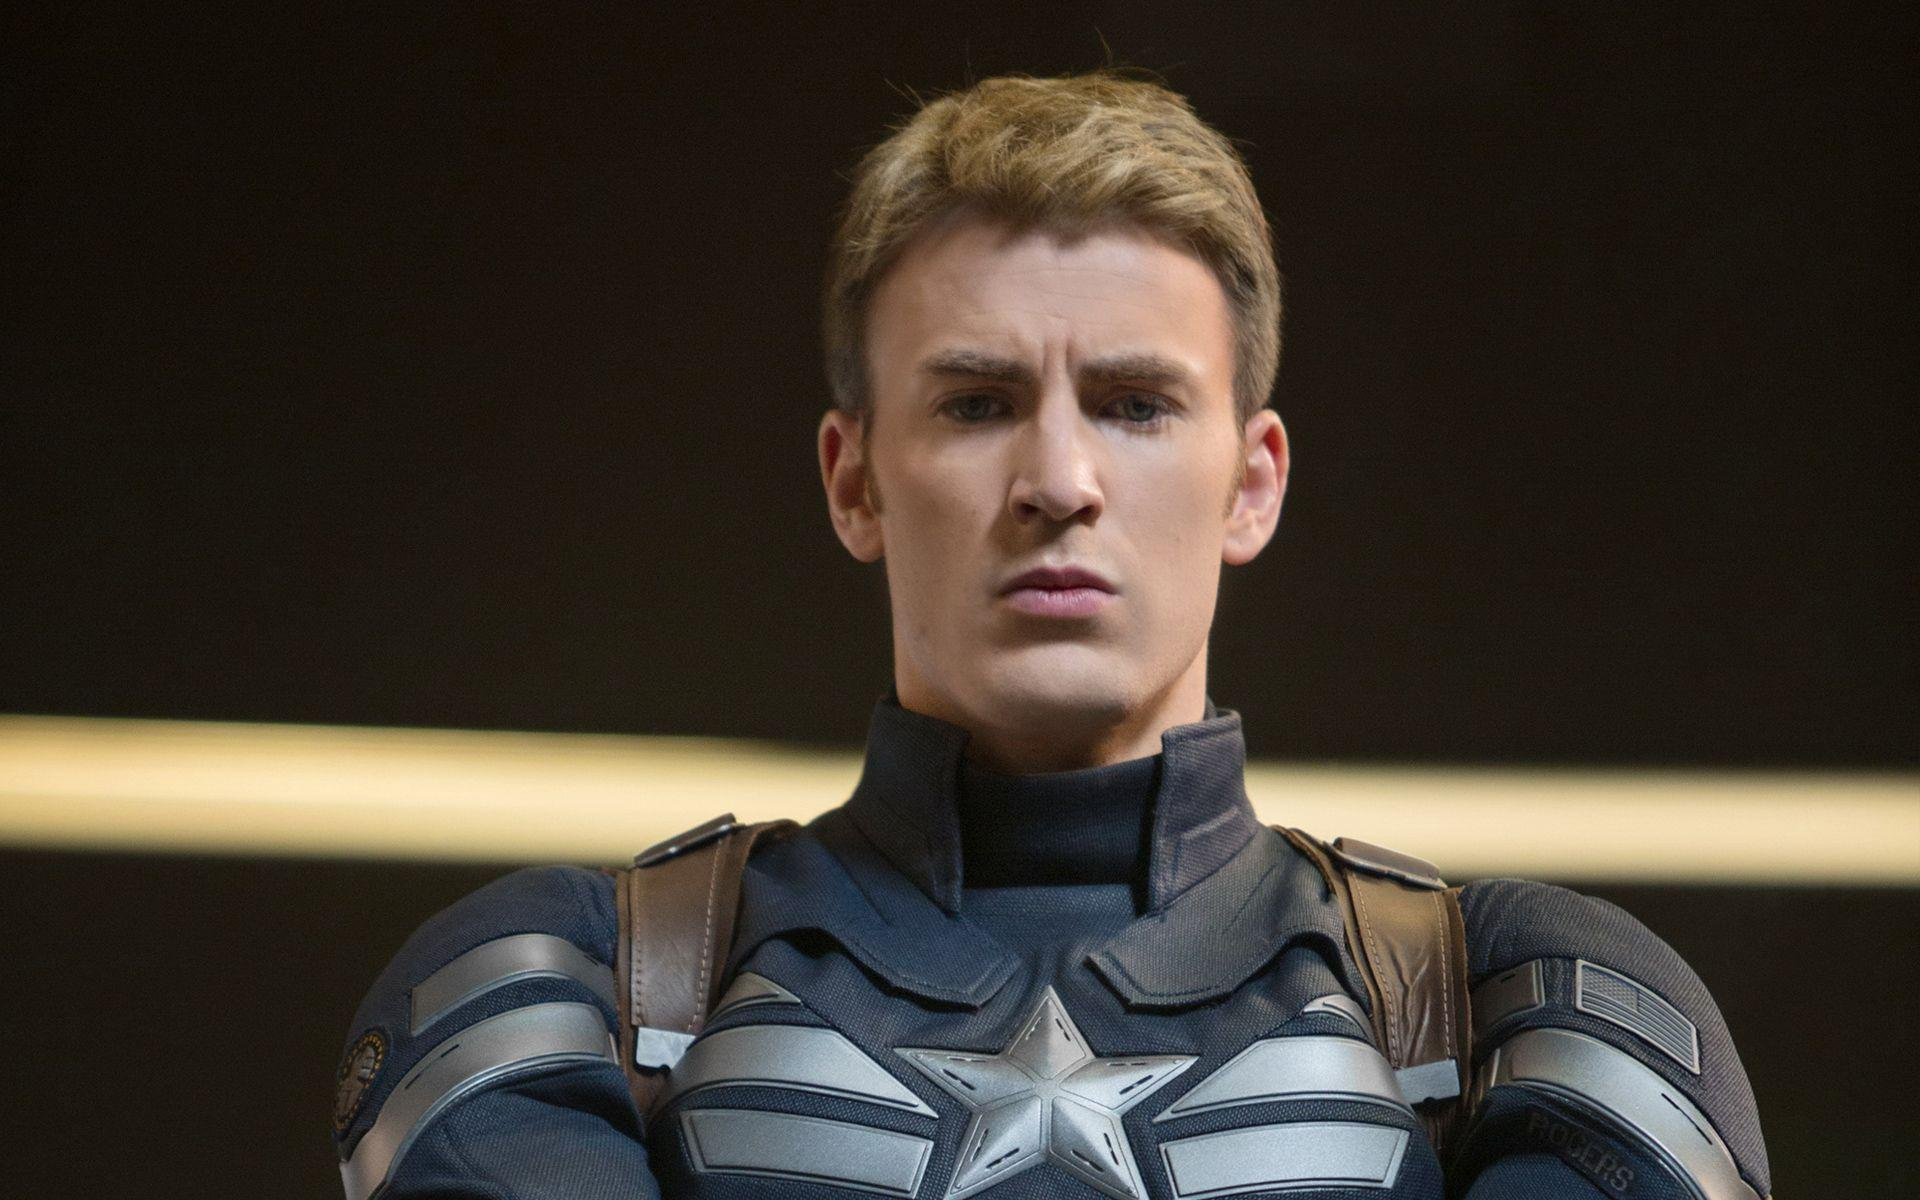 Chris Evans Backgrounds Free Download | HD Wallpapers, Backgrounds ...